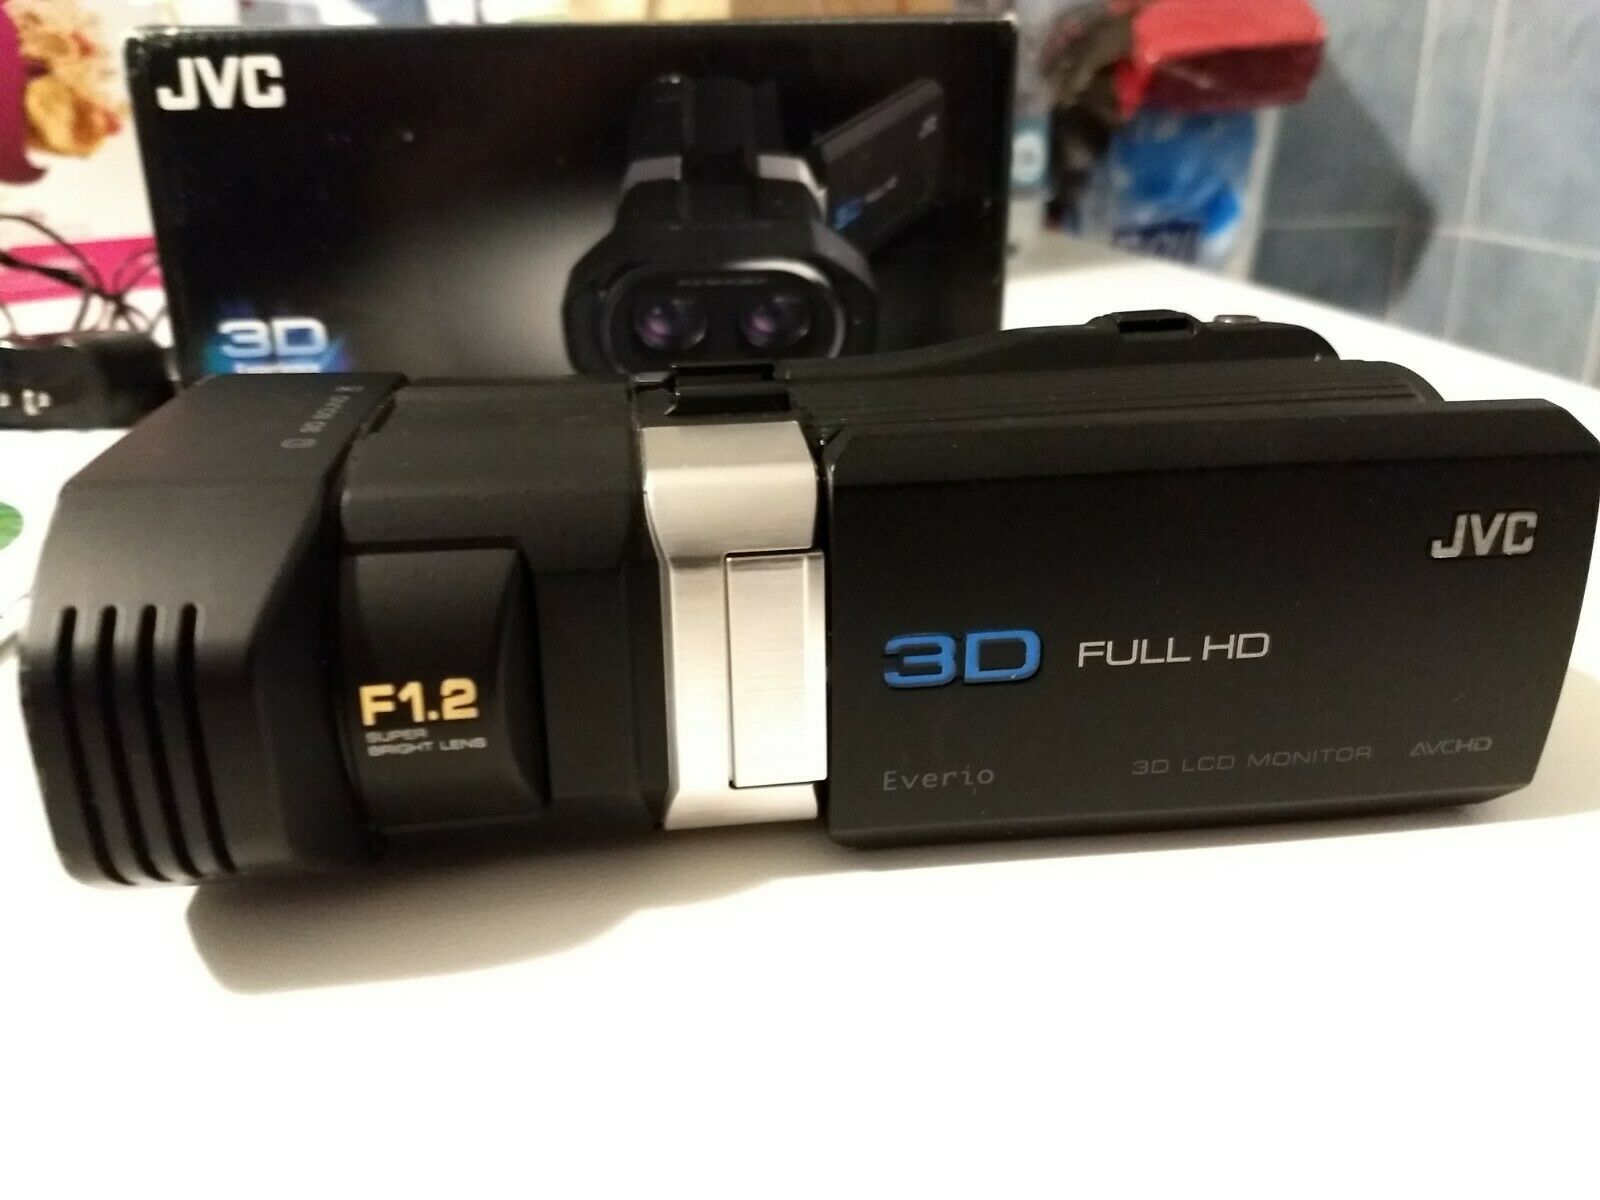 3D stereoscopic video camcorder JVC GS-TD1